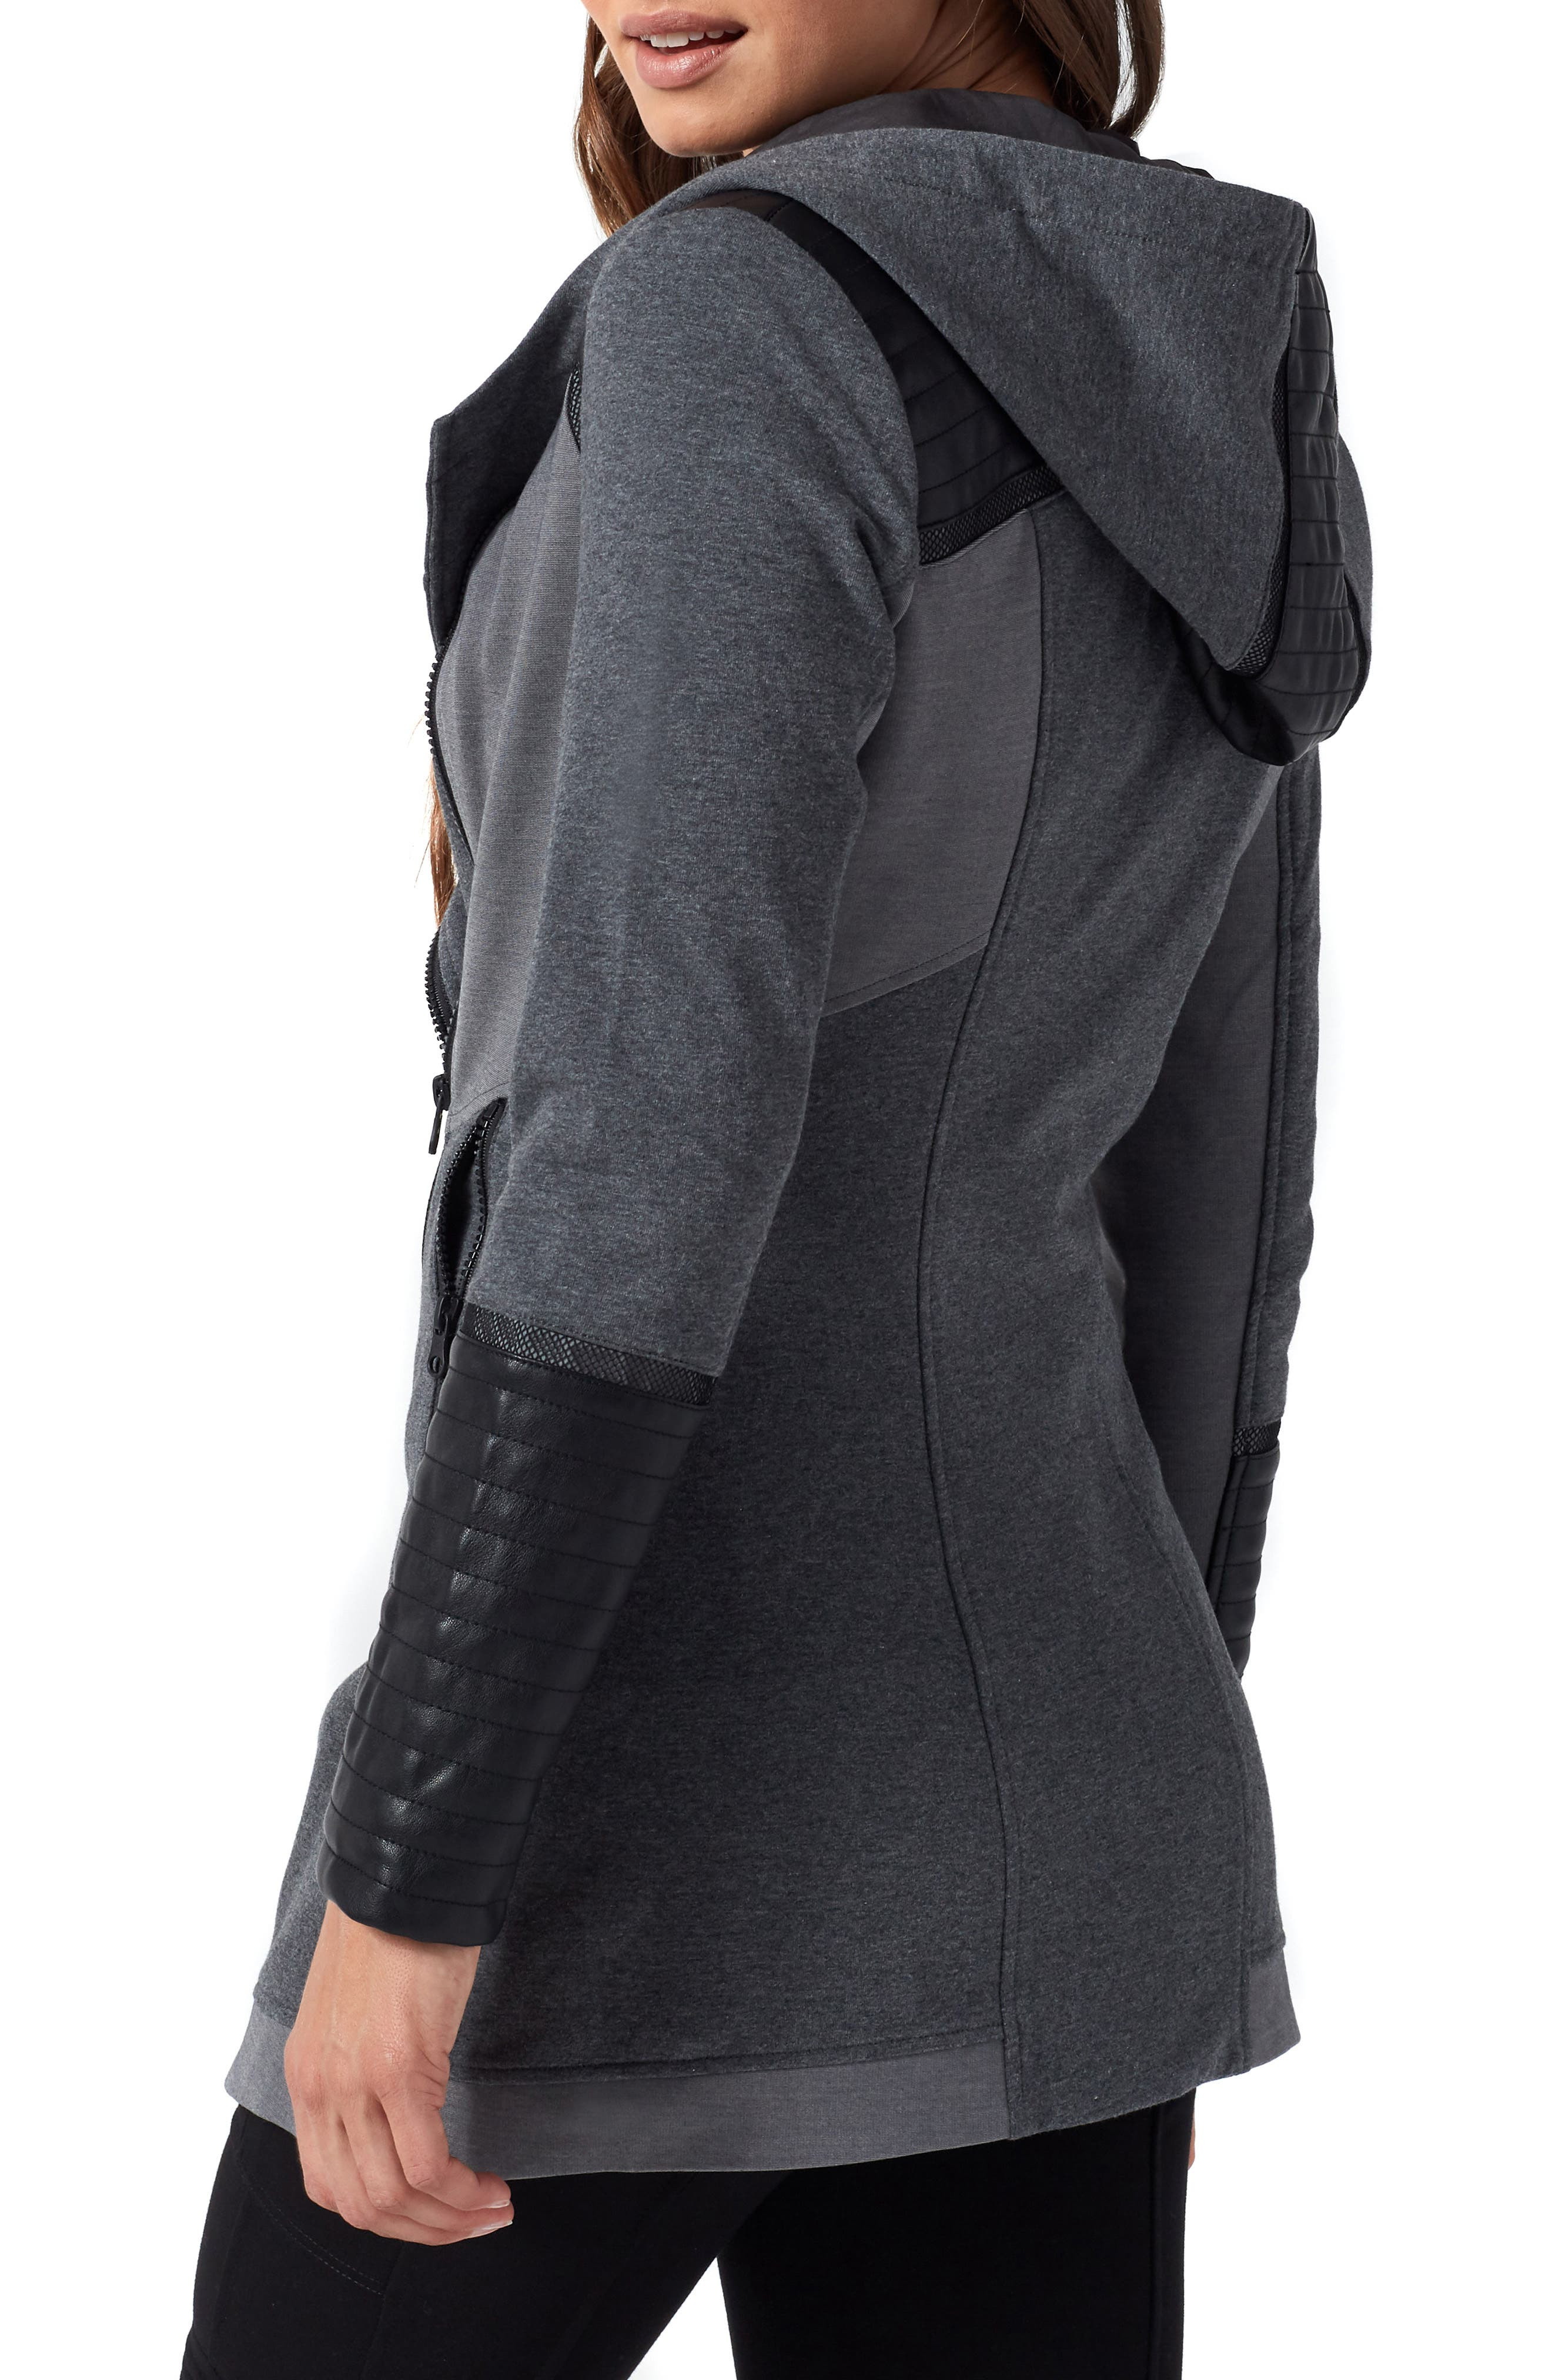 BLANC NOIR, Traveller Mesh Inset Jacket, Alternate thumbnail 4, color, CHARCOAL